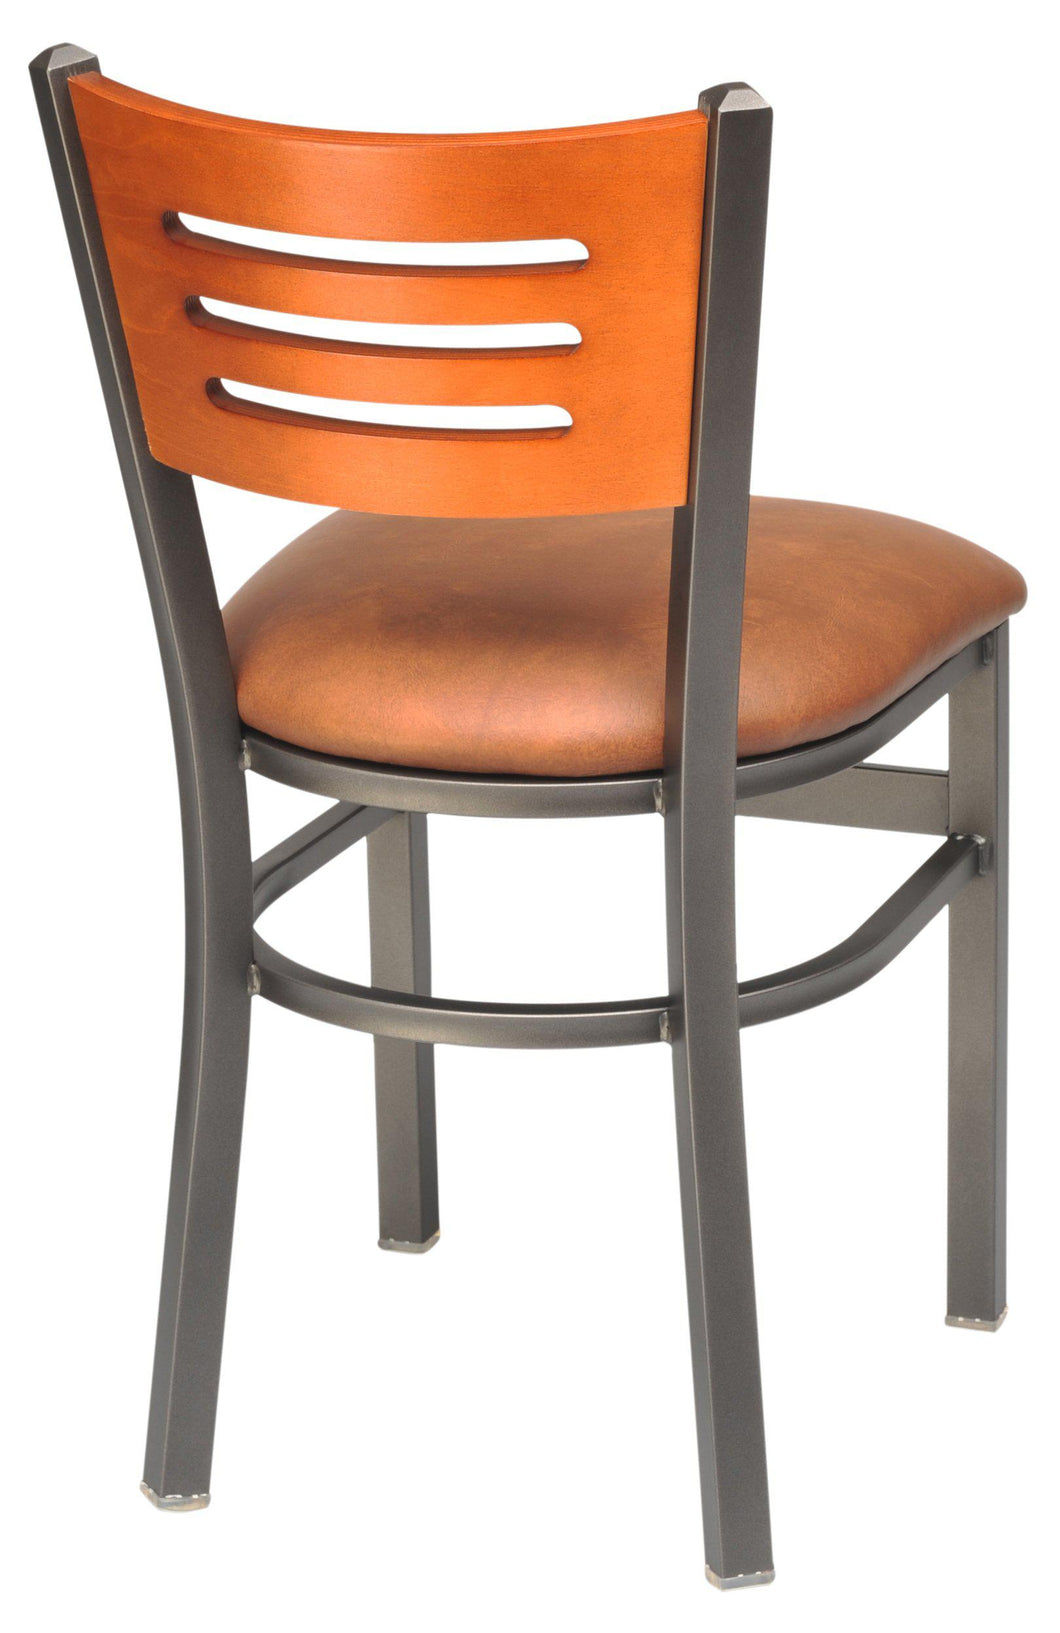 Metal Chair with Slots in Wood Back-Richardson Seating